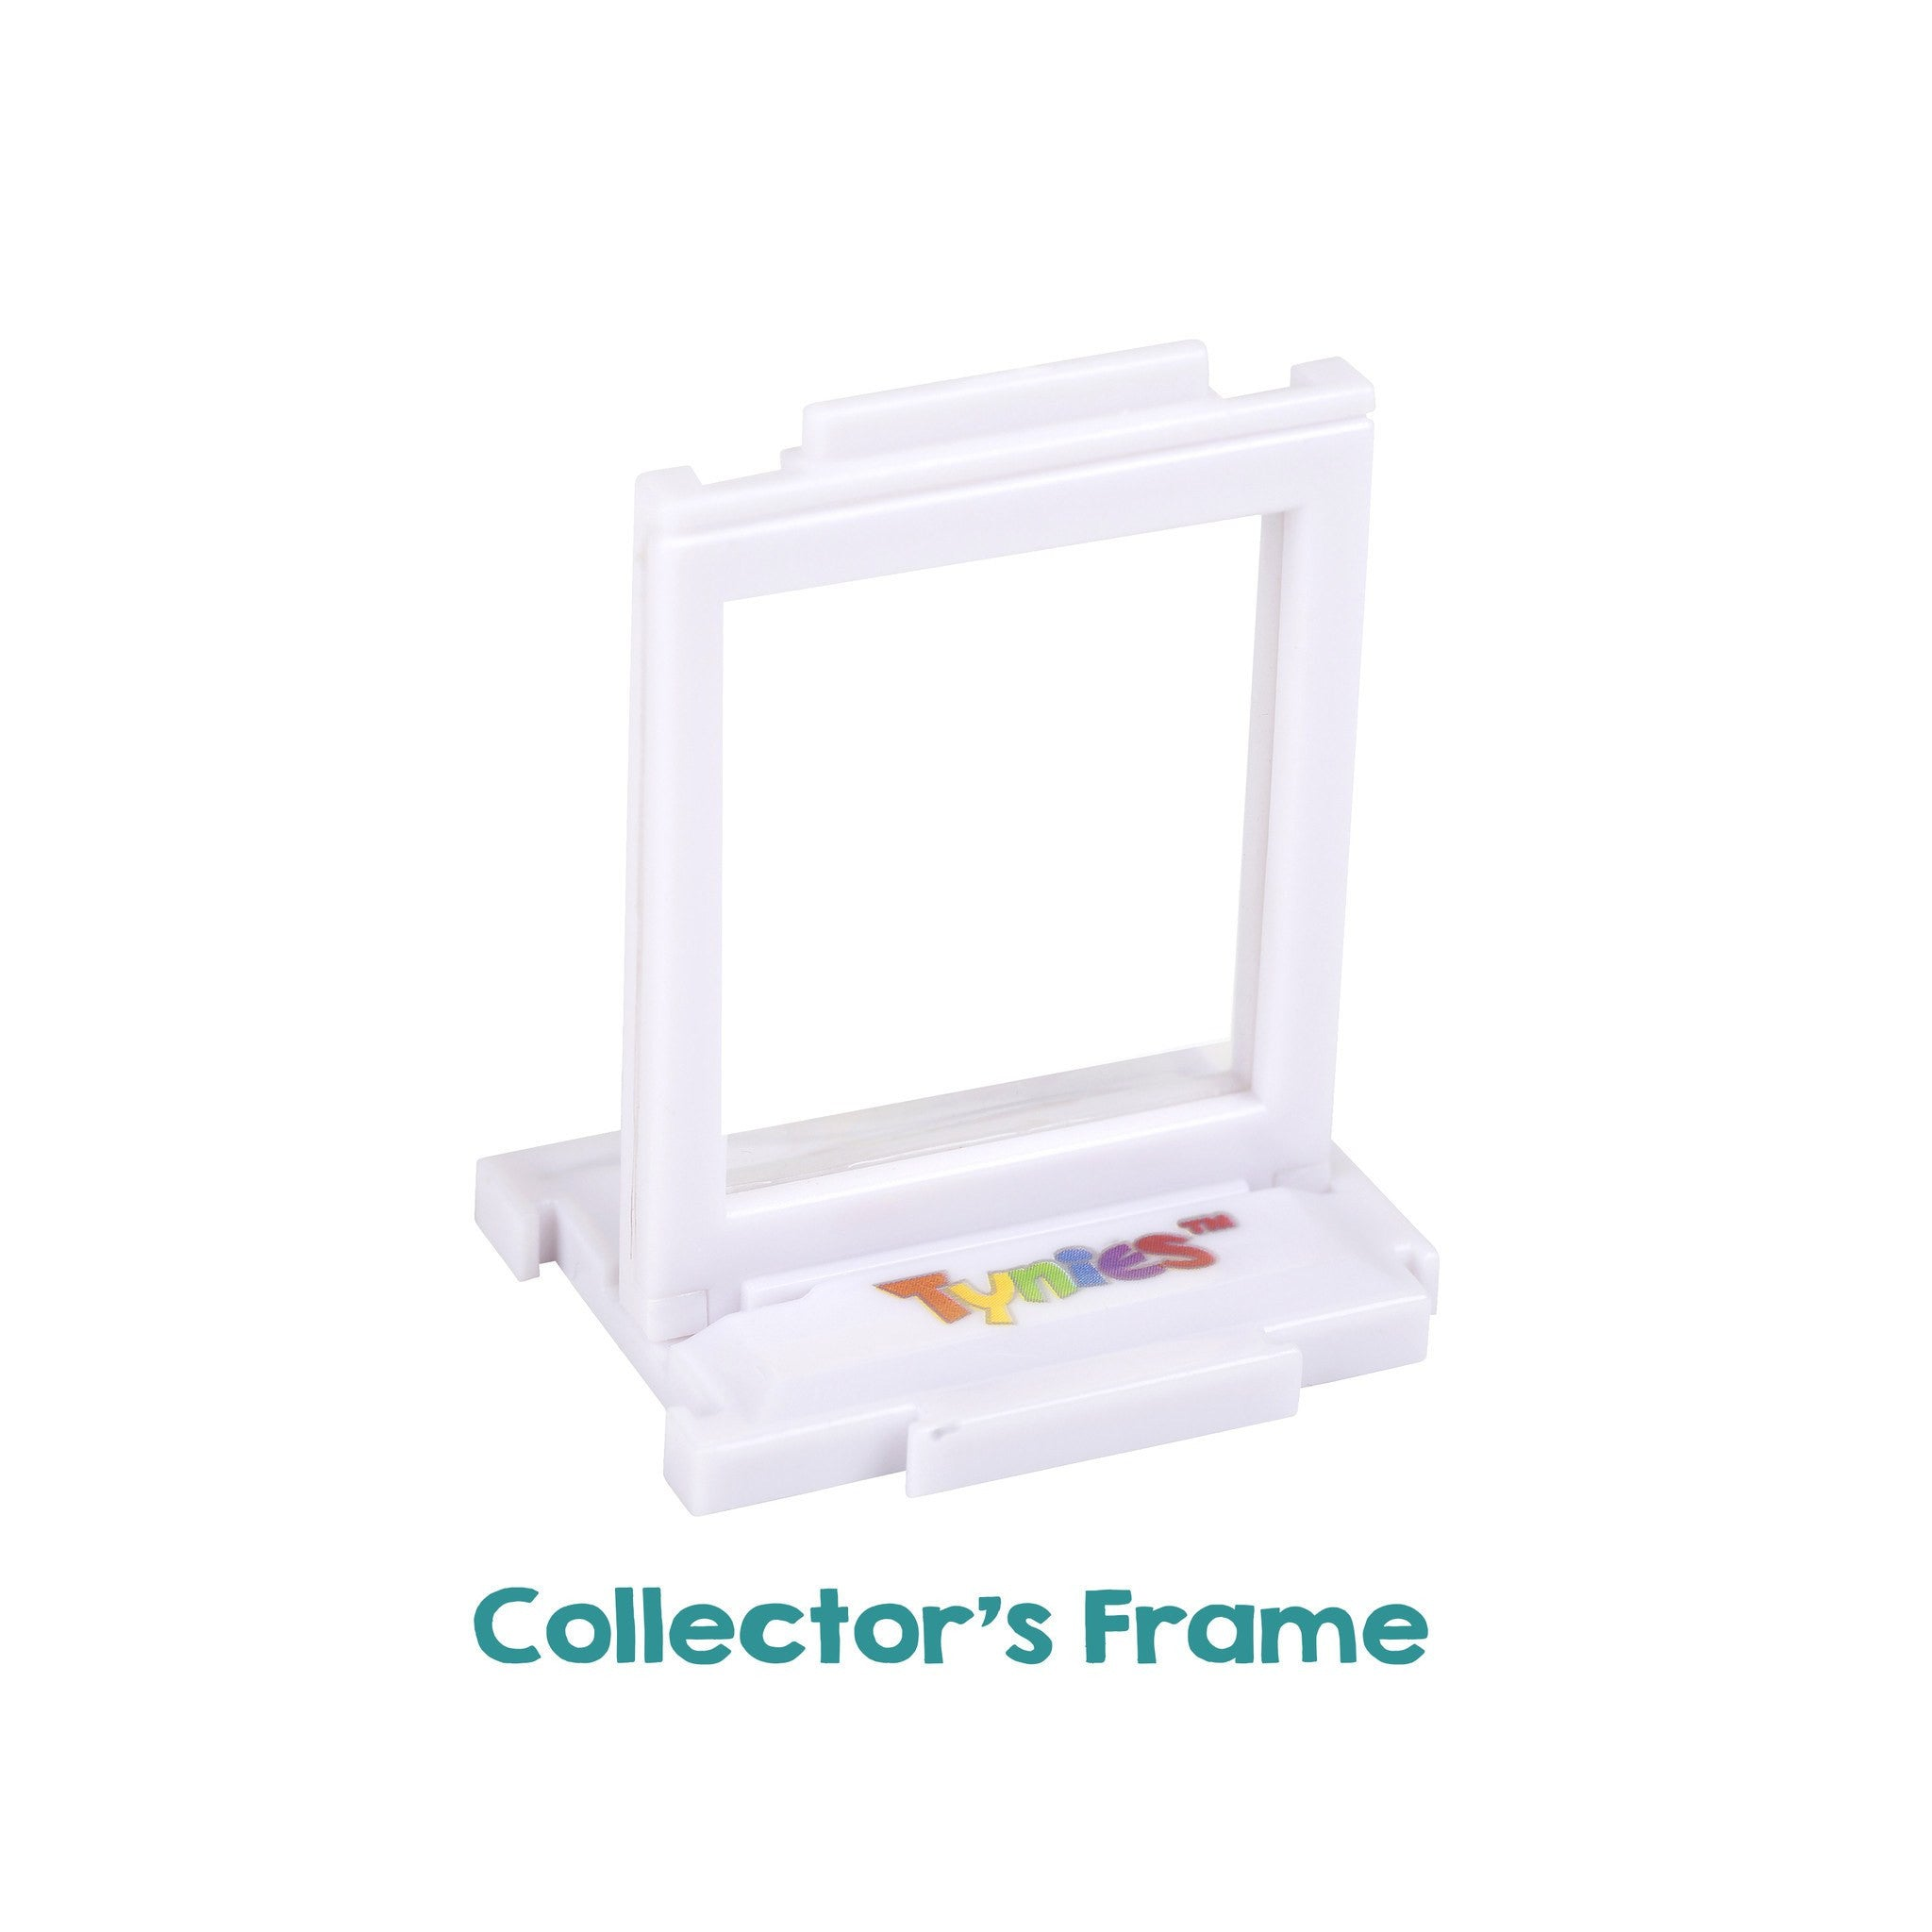 Collectors frame for miniature glass figurines